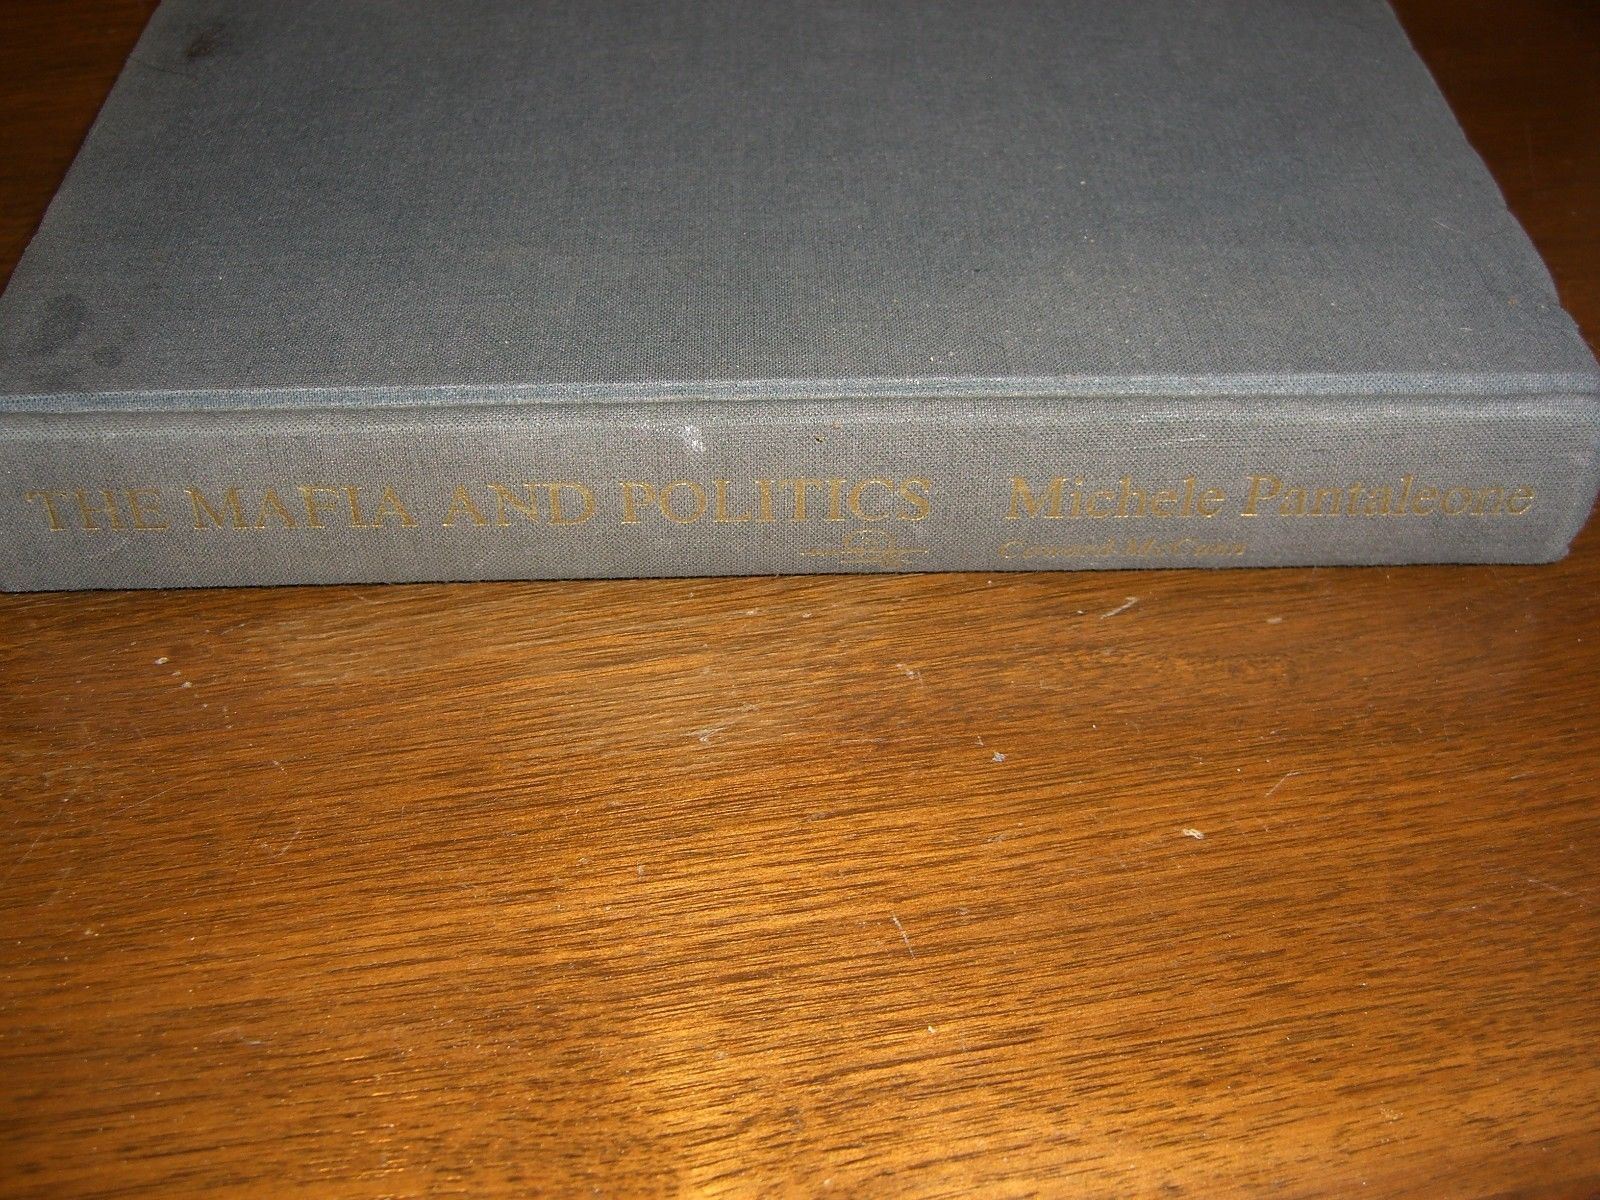 Primary image for The Mafia and Politics by Michele Pantaleone 1st Edition 1966